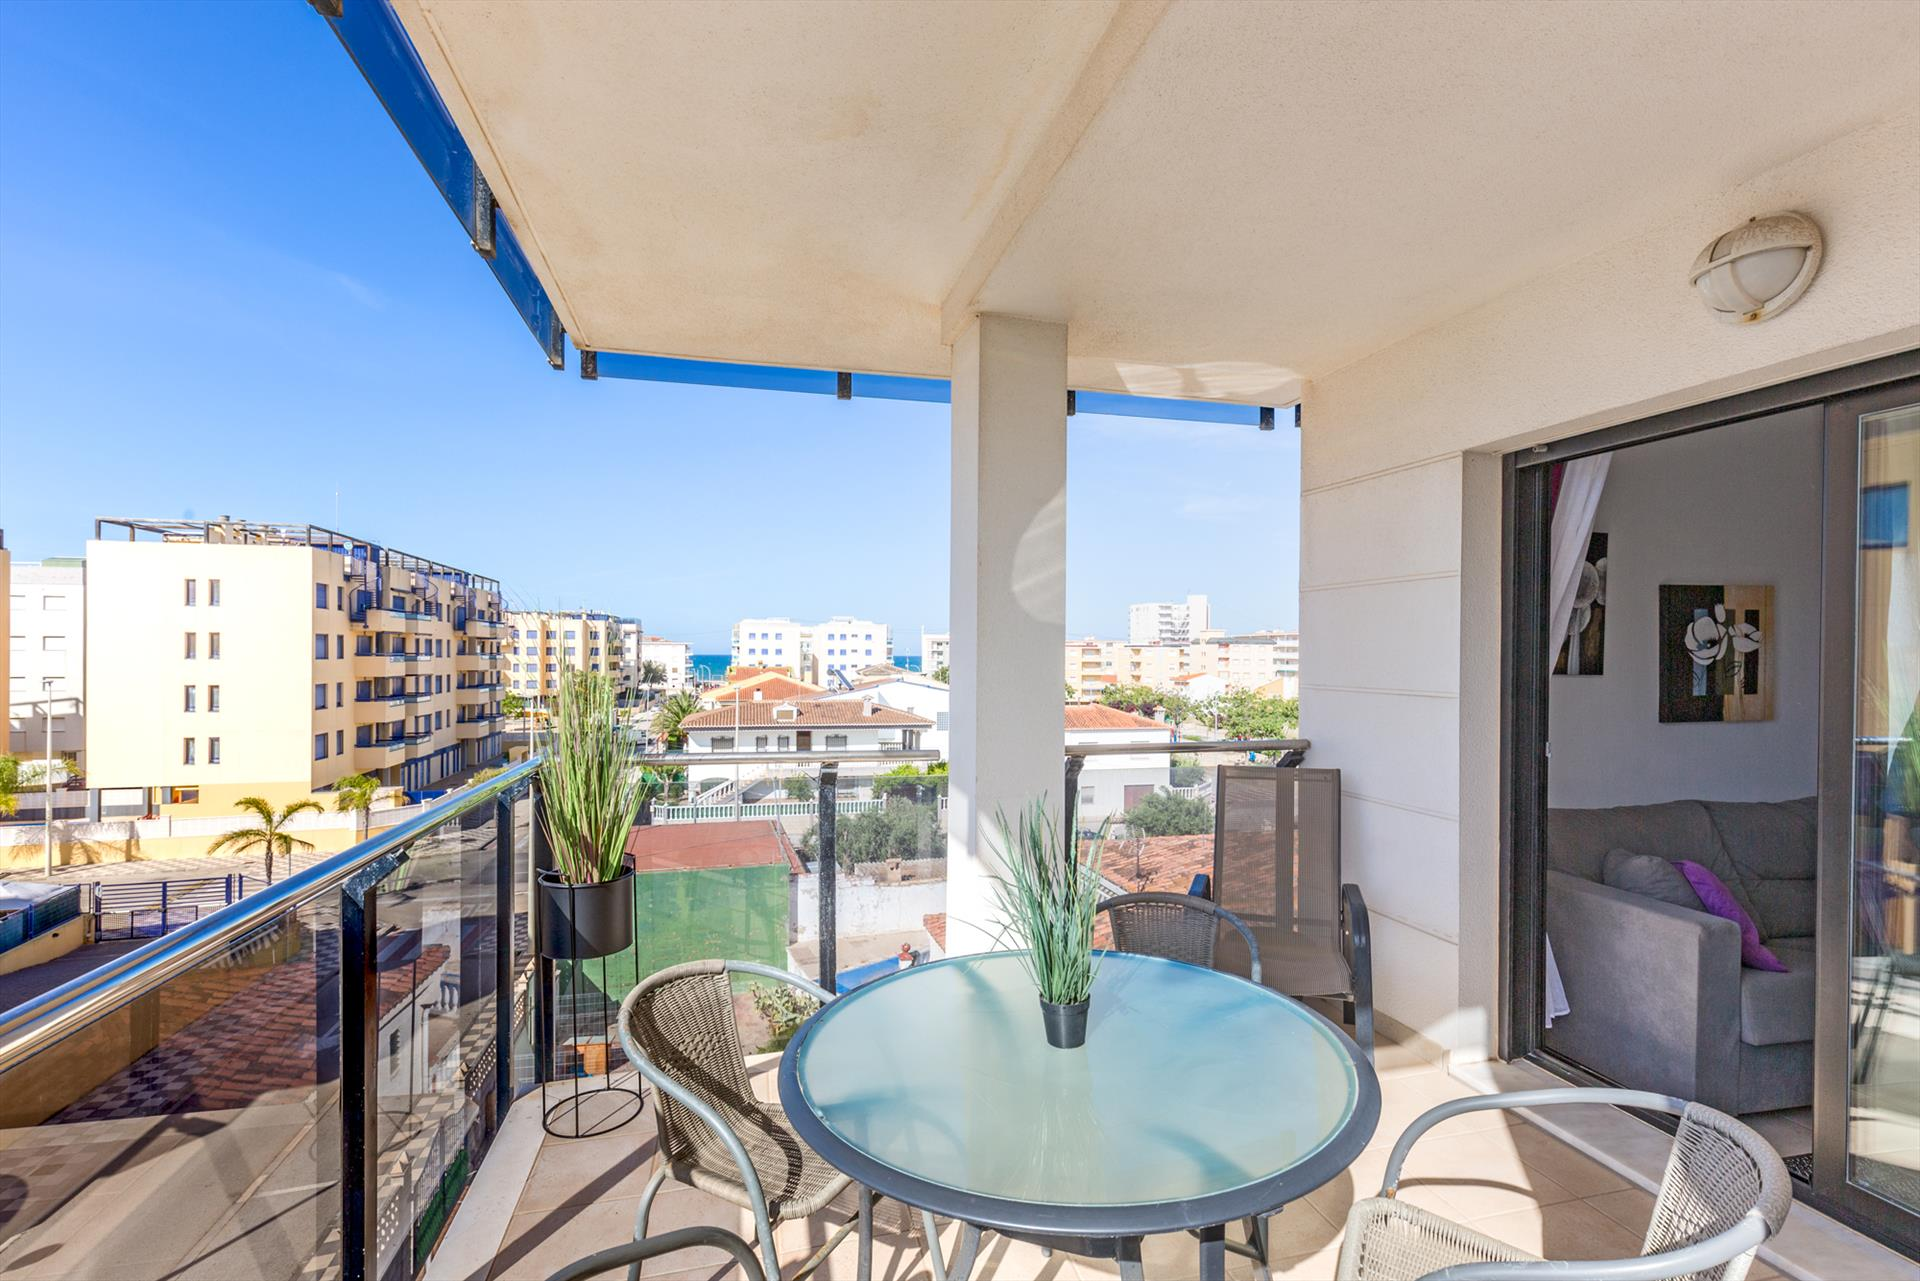 AP12 Migjorn Mar de Bellreguard, Wonderful and nice apartment in Bellreguard, on the Costa Blanca, Spain  with communal pool for 6 persons.....